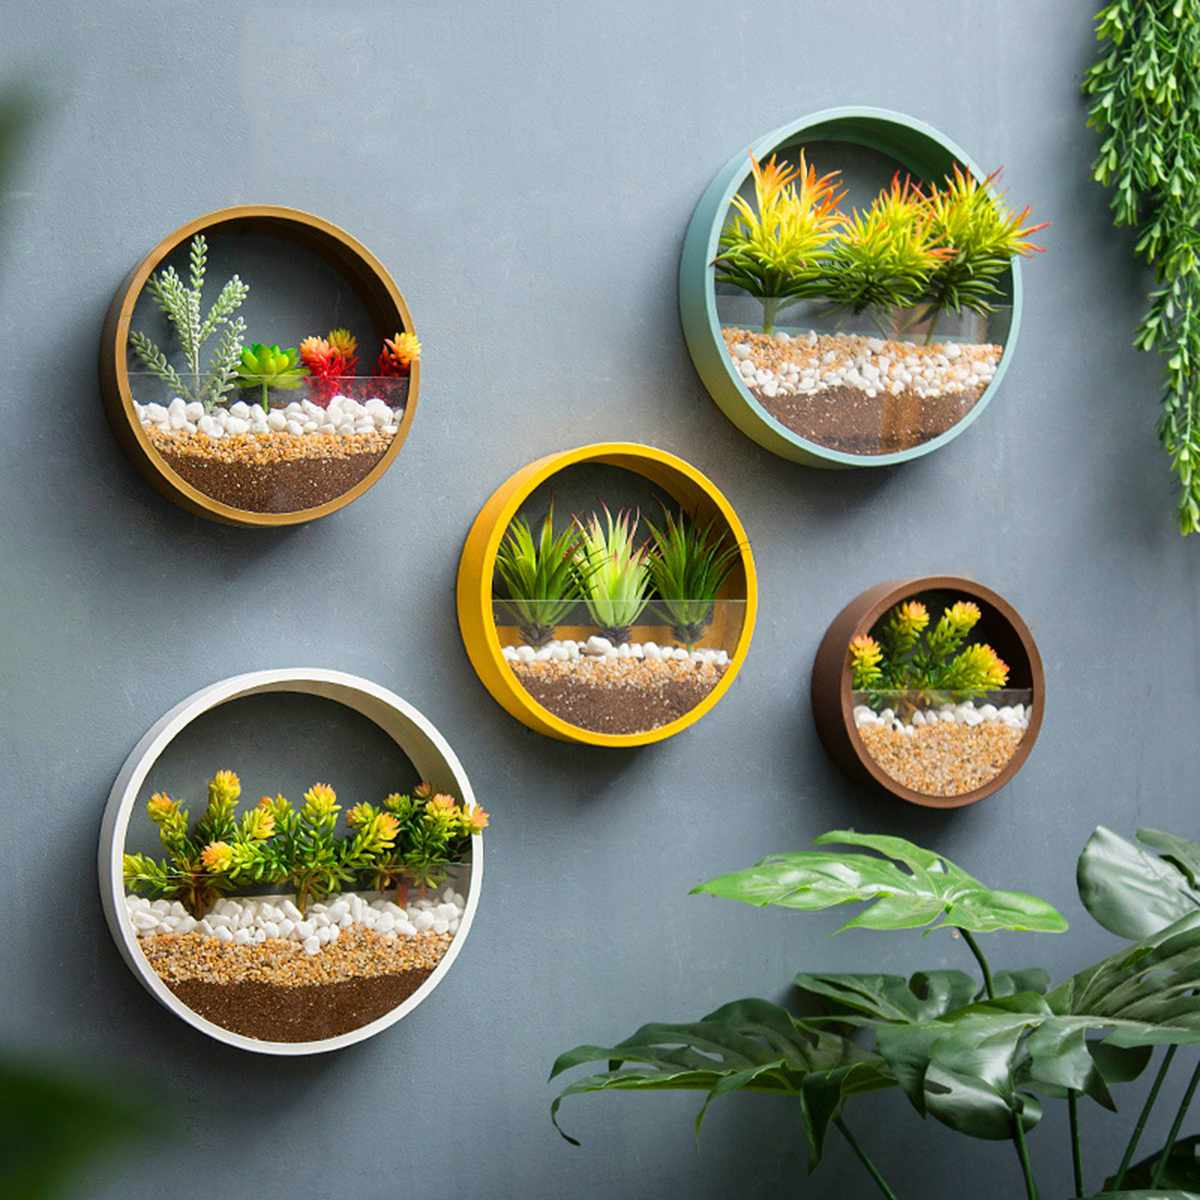 4 Colors Round Iron Wall Vase Home Living Room Restaurant Hanging Flower Pot Wall Decor Succulent Plant Planters Art Glass Vases